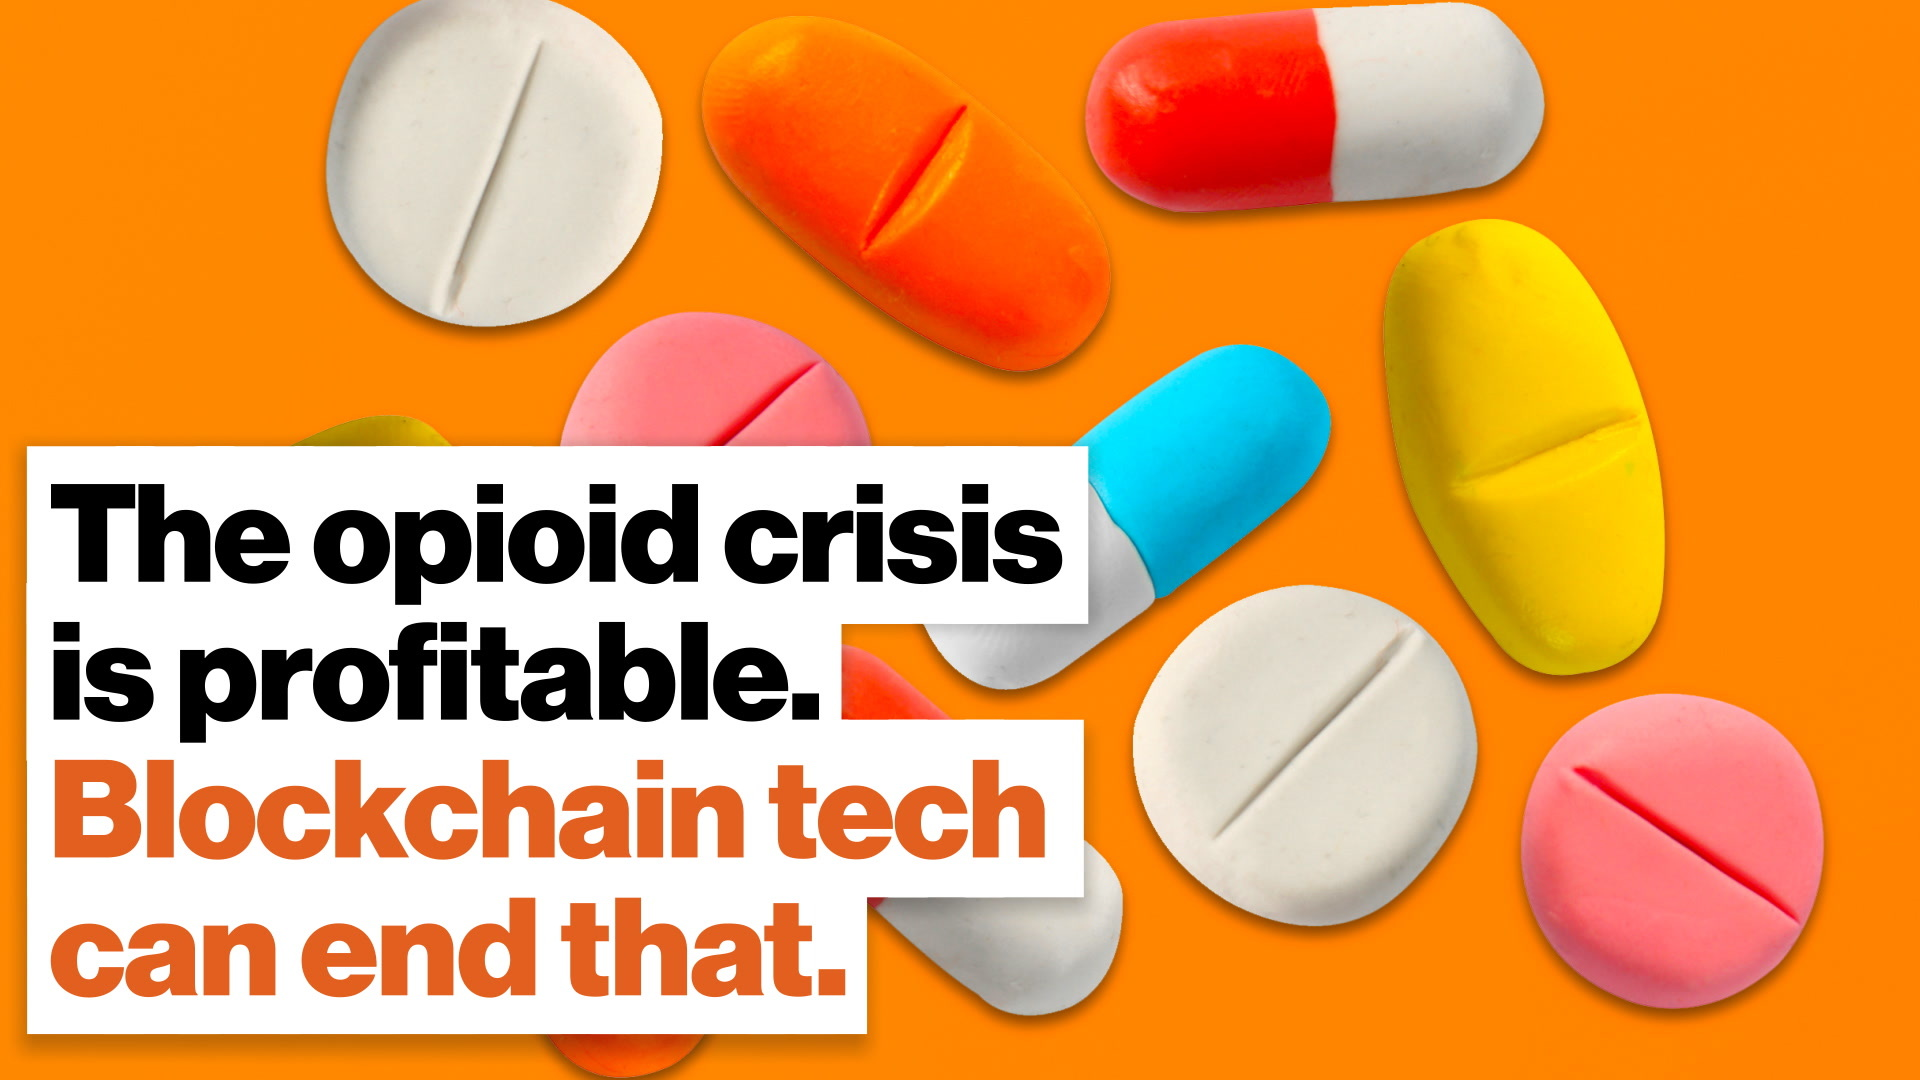 The opioid crisis is profitable. Blockchain tech can end that.